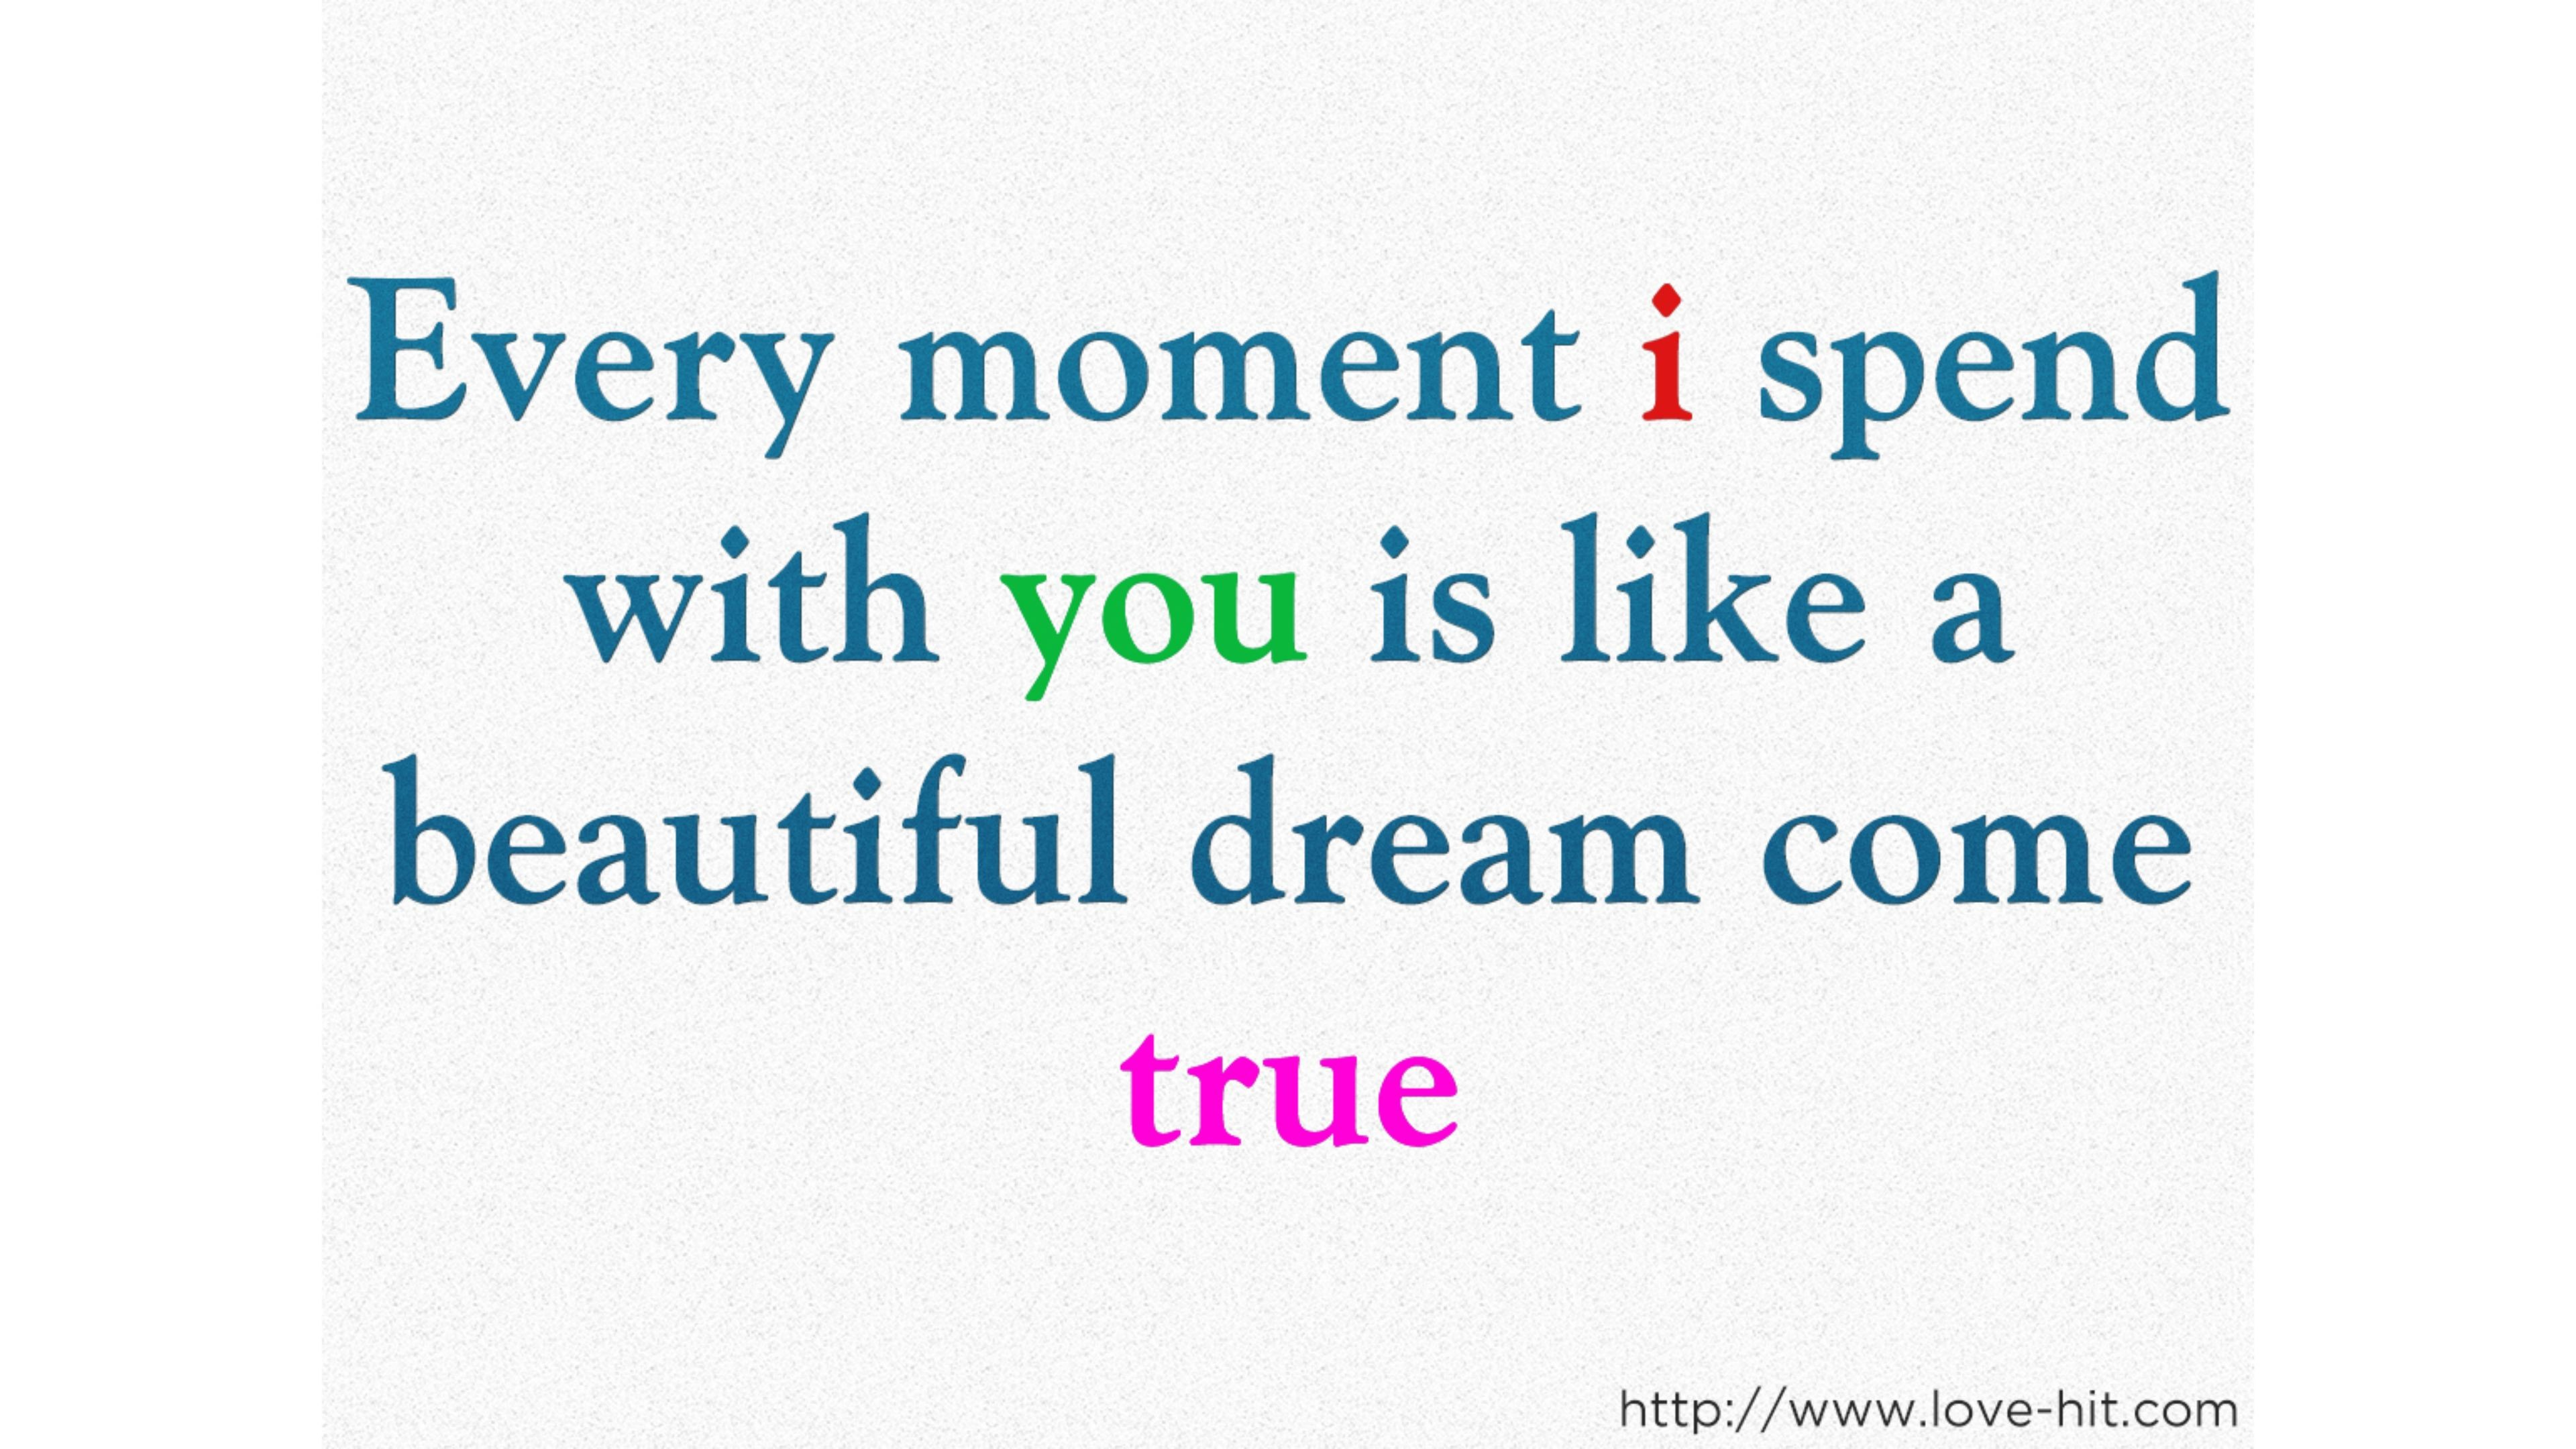 Cute Love Quote For Him 4k Wallpaper   Data Src Widescreen - Cute I Love You Quotes For Your Best Friend - HD Wallpaper